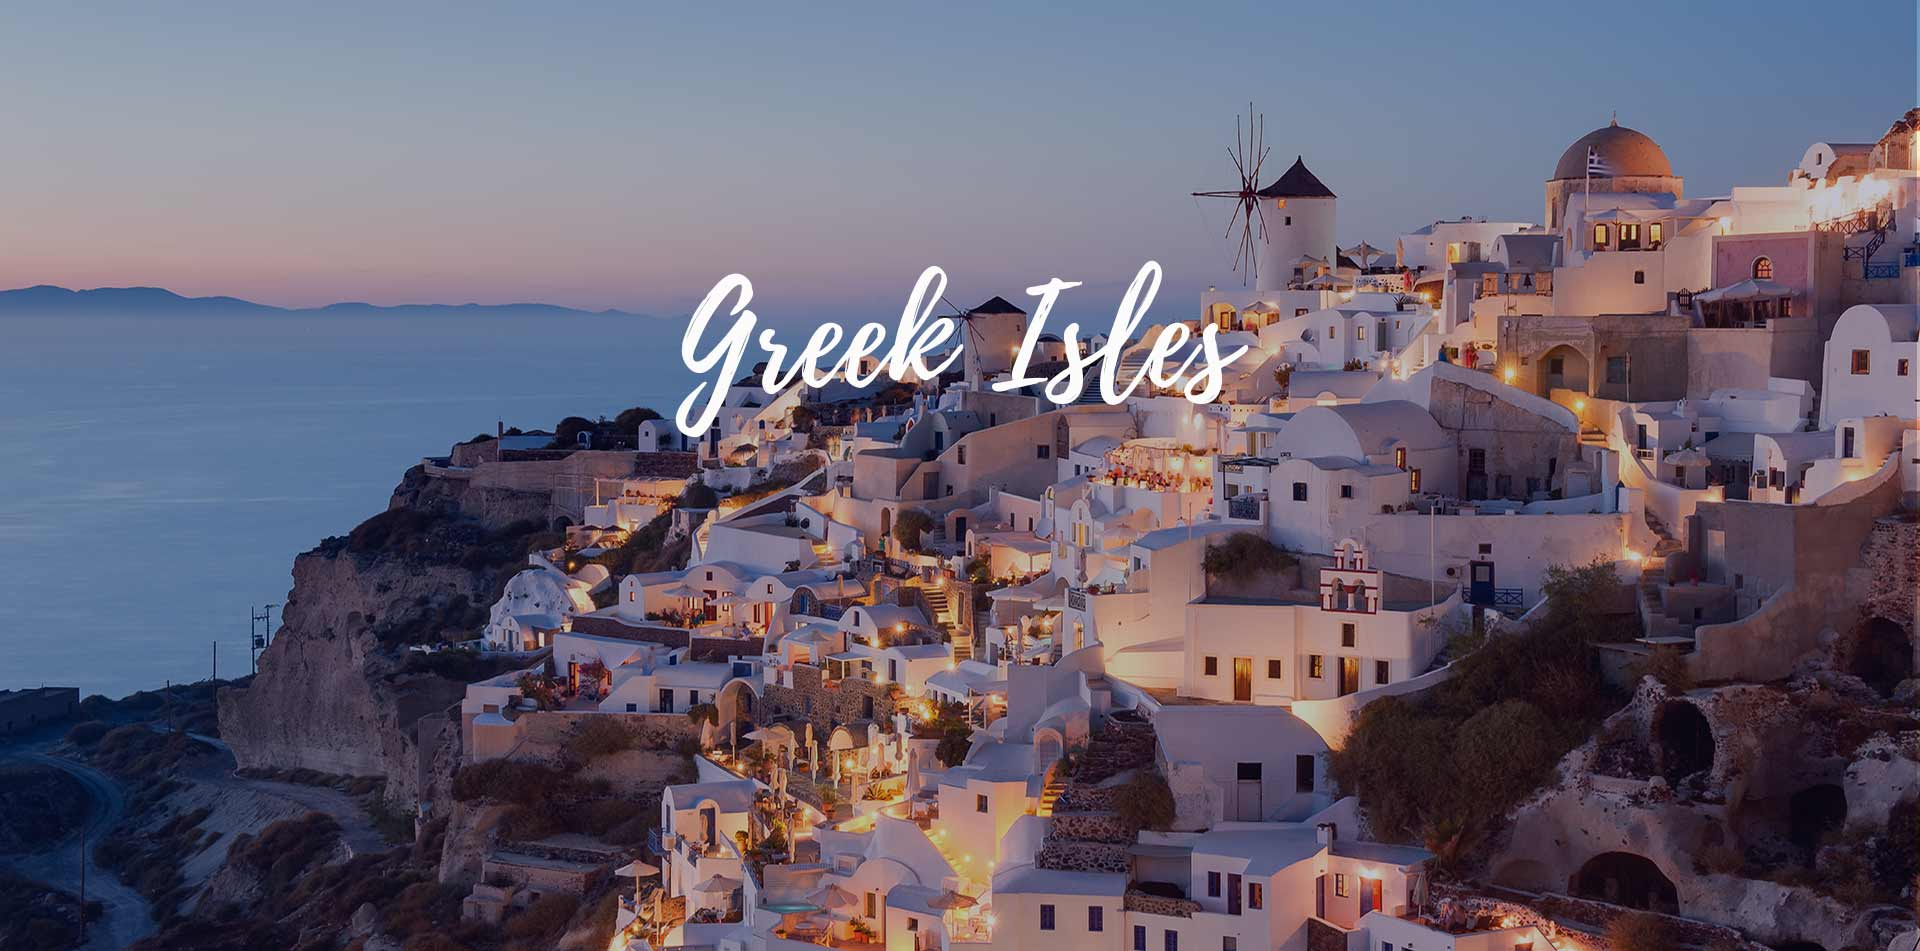 Europe Greece Santorini white buildings on cliffside overlooking ocean Greek Isles - luxury vacation destinations